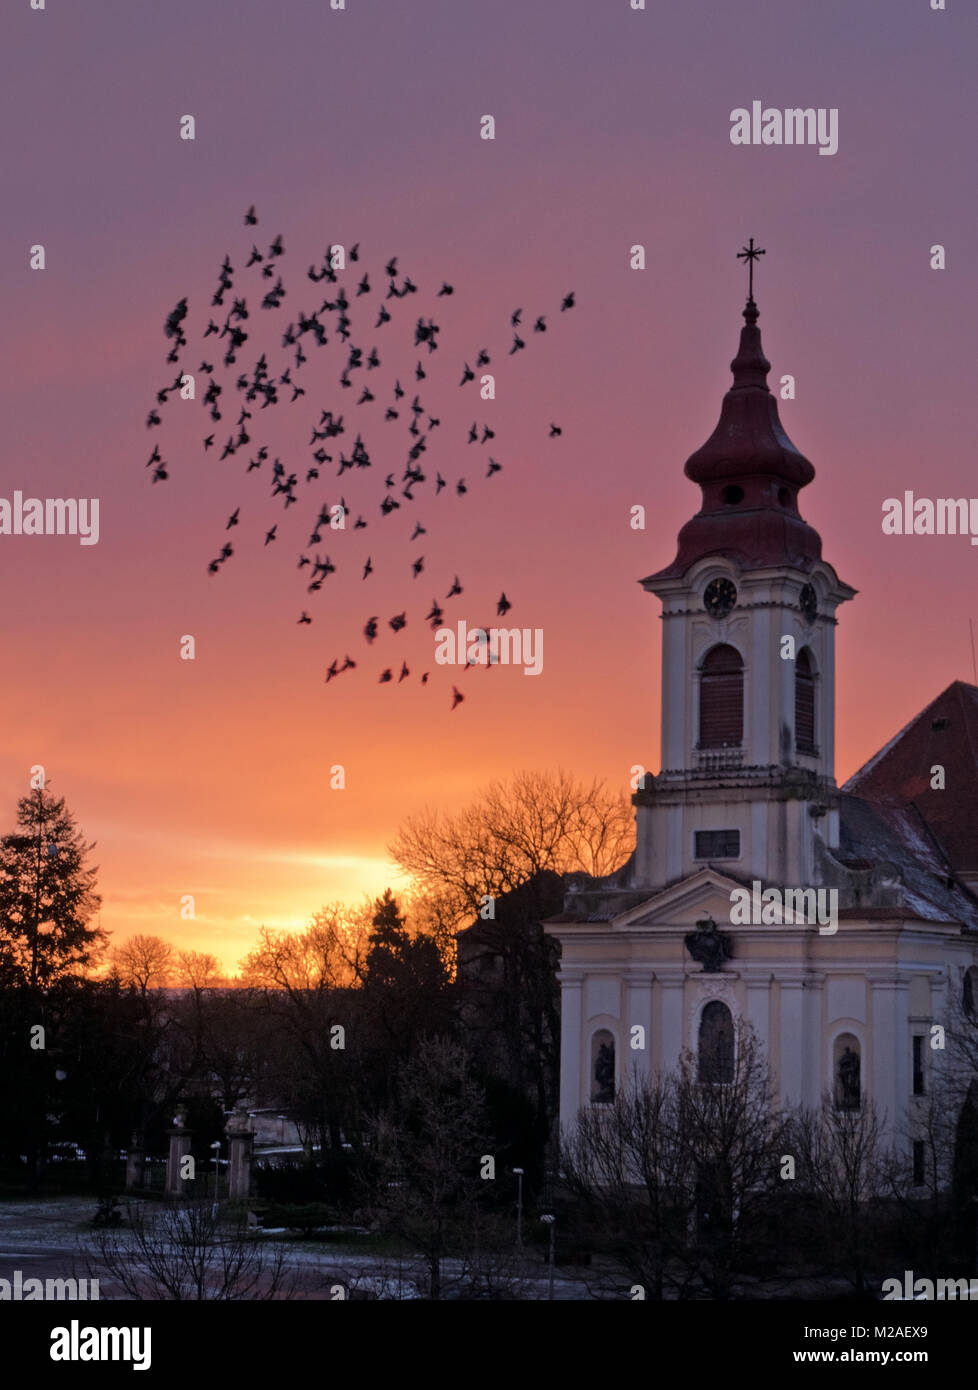 Flock of Pigeons Flaying  around The Church in front of Sunrise. - Stock Image